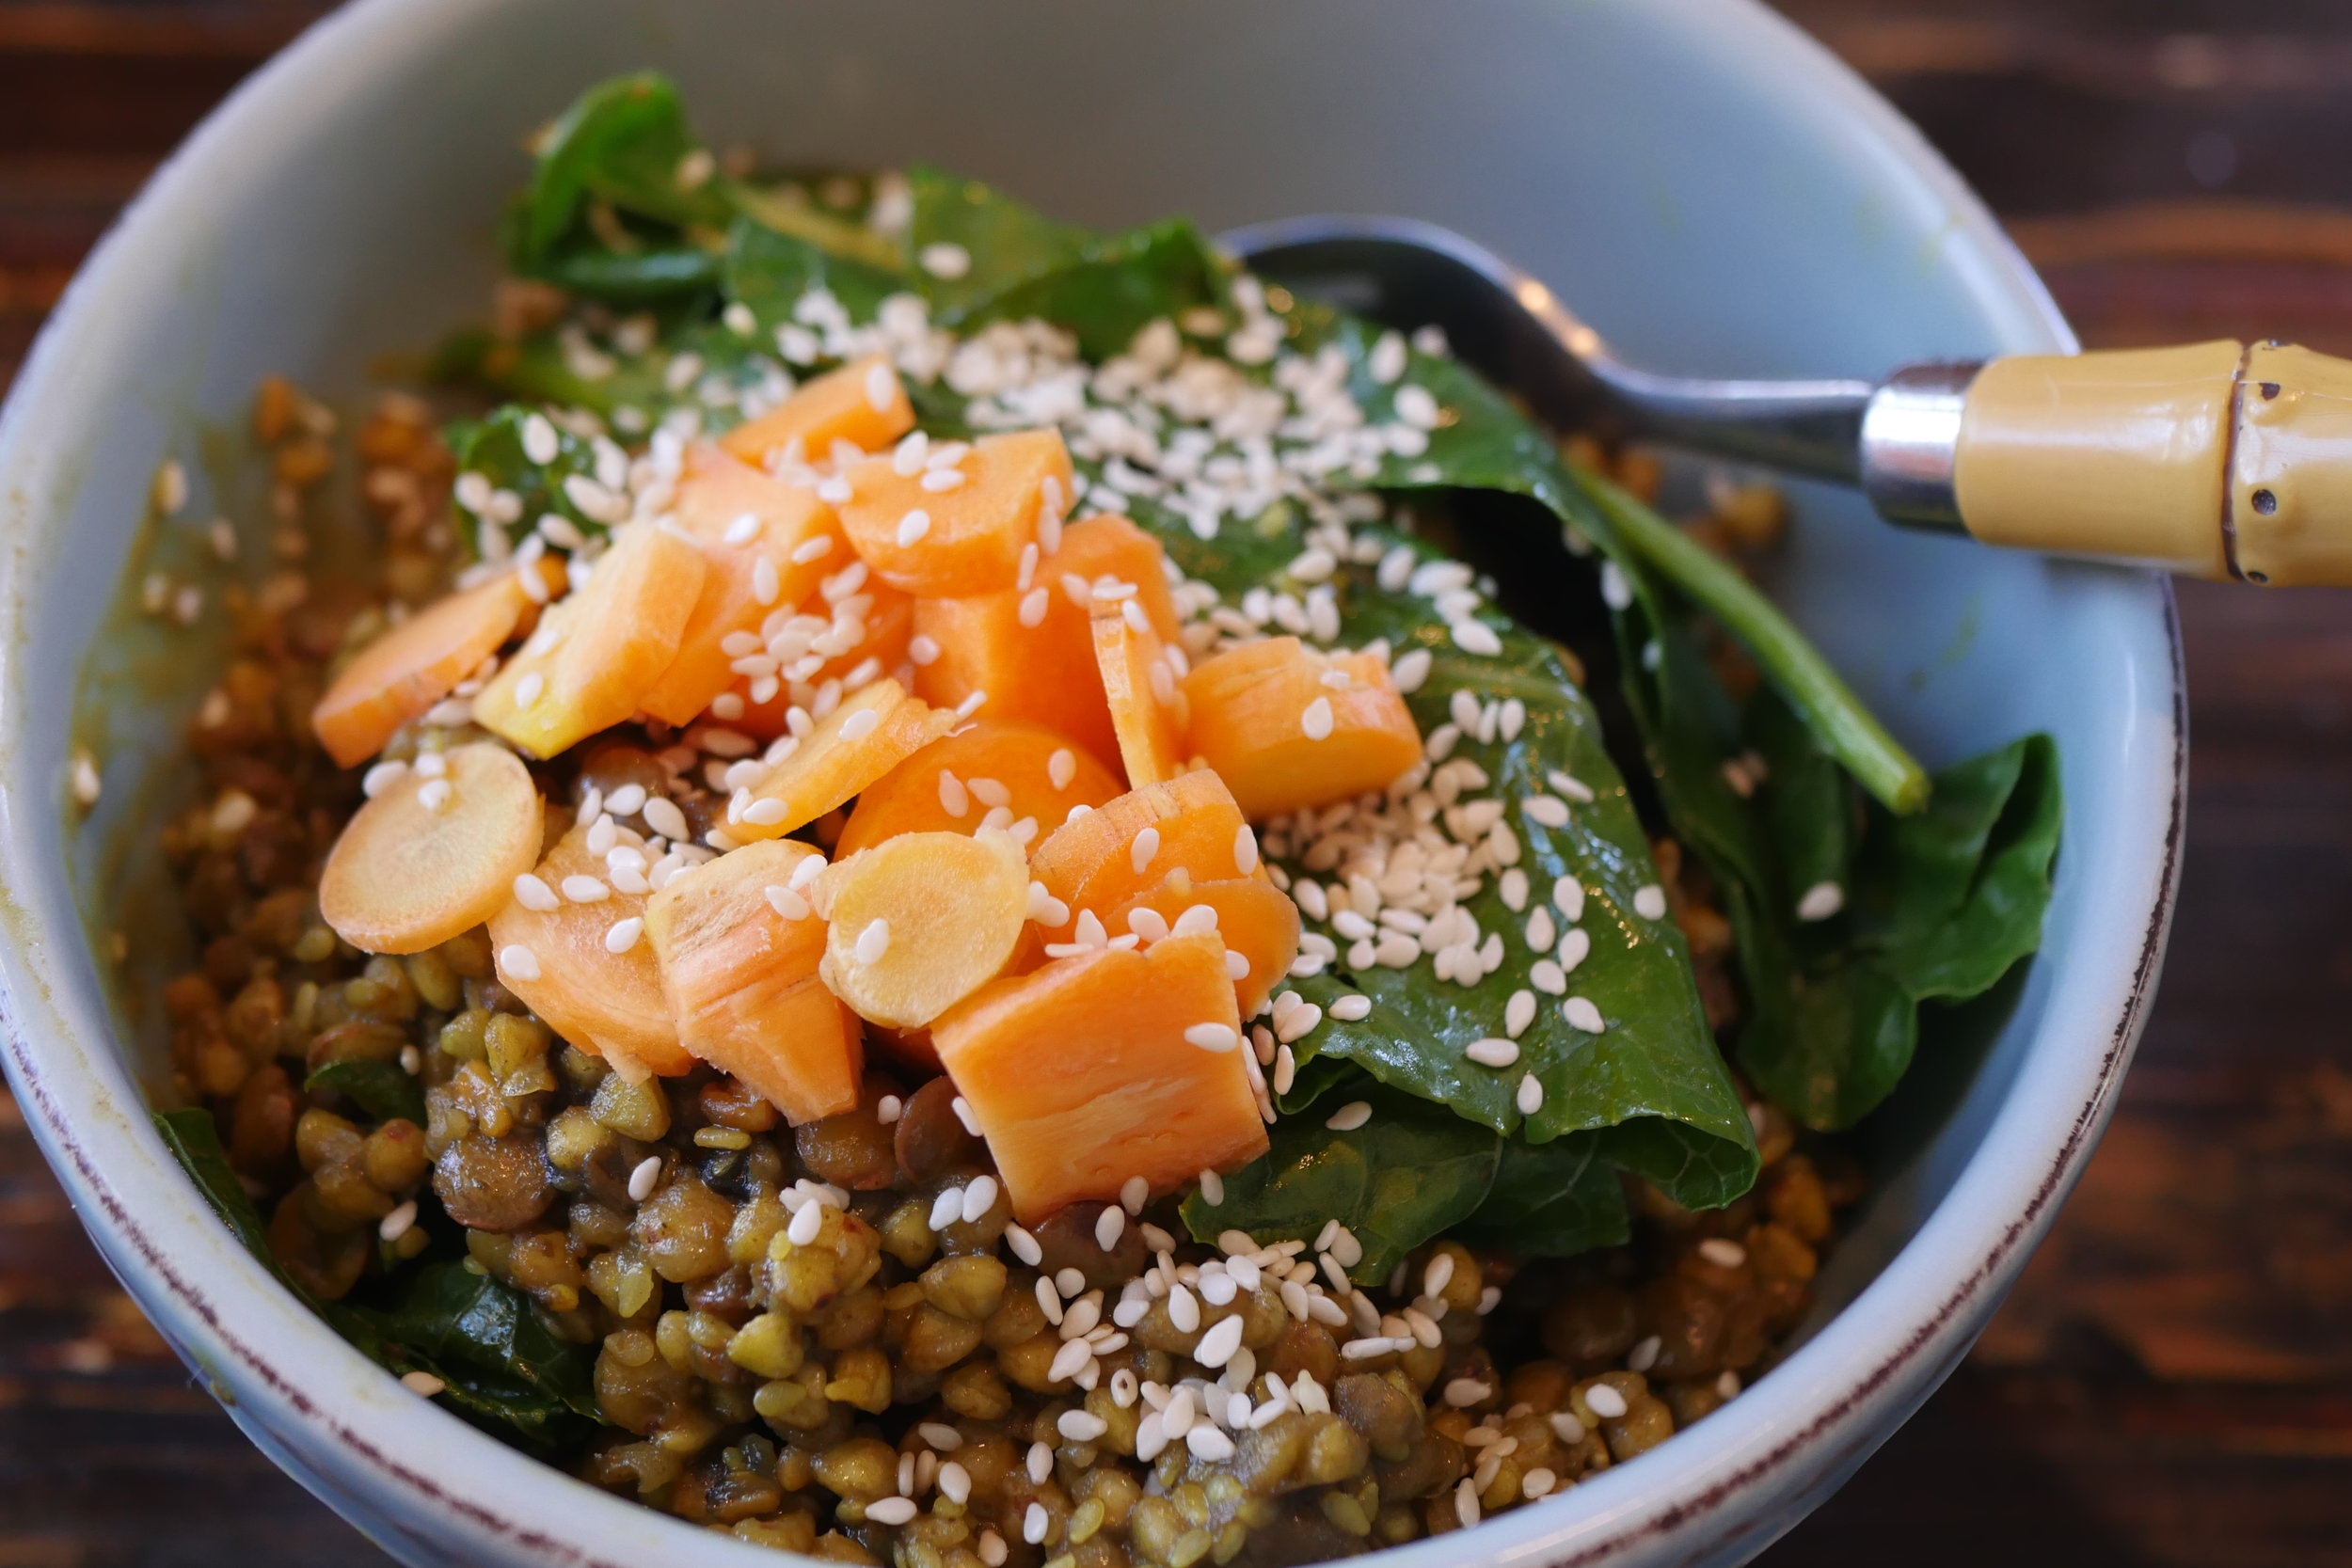 This lentil and buckwheat curry topped with broccoli leaves, carrots and sesame seeds is so quick and easy to make and tastes soon yummy + it's healthy and light.